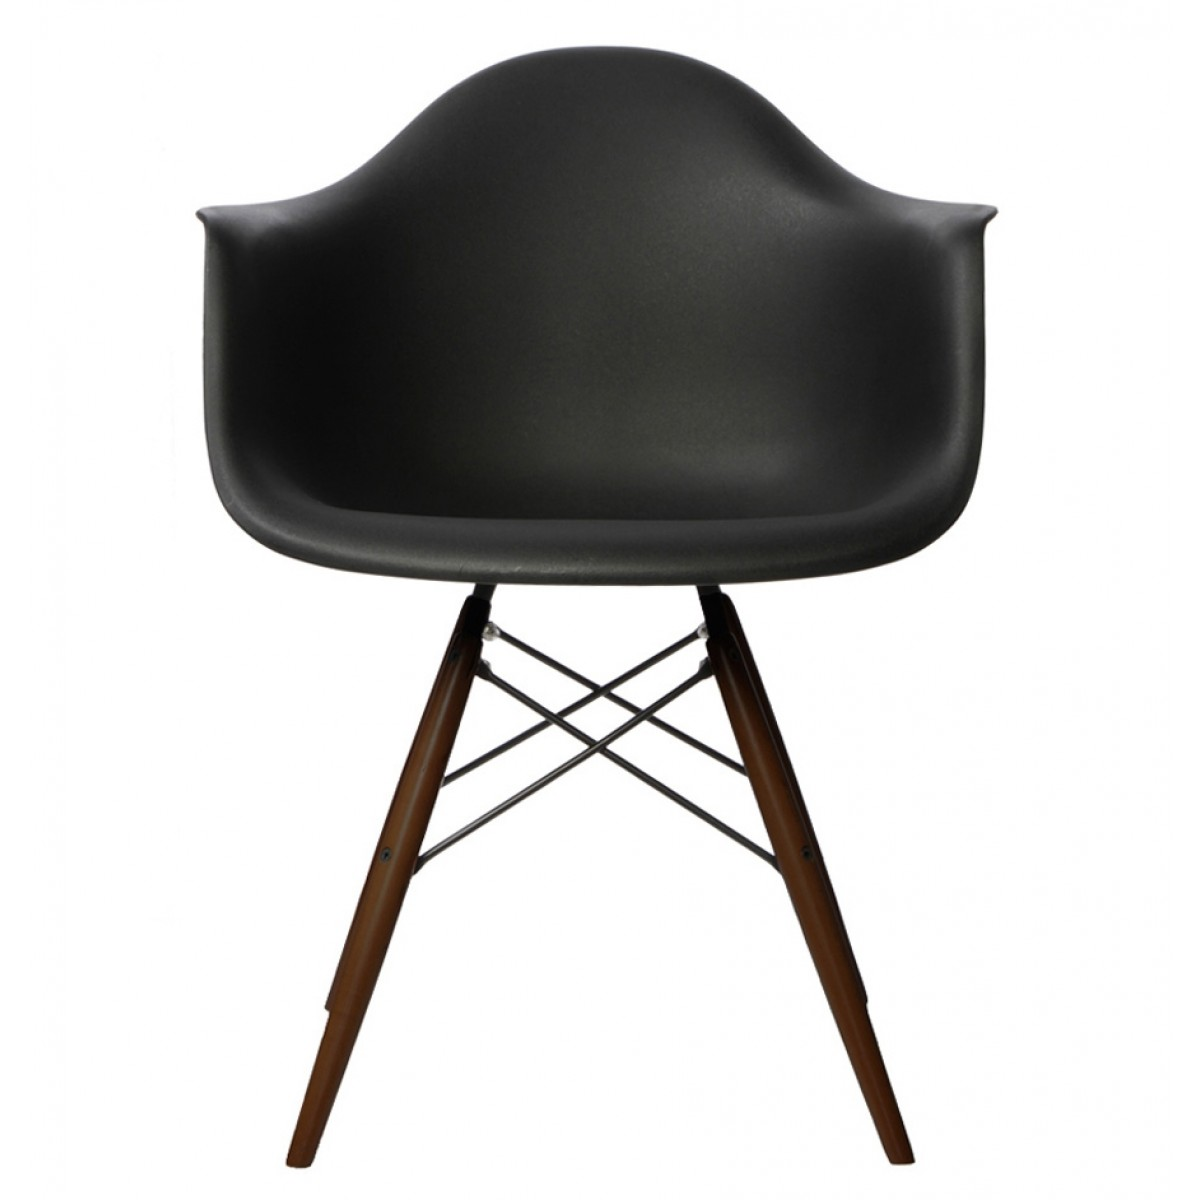 Dining arm chairs black - With Your Purchase Receive At No Cost